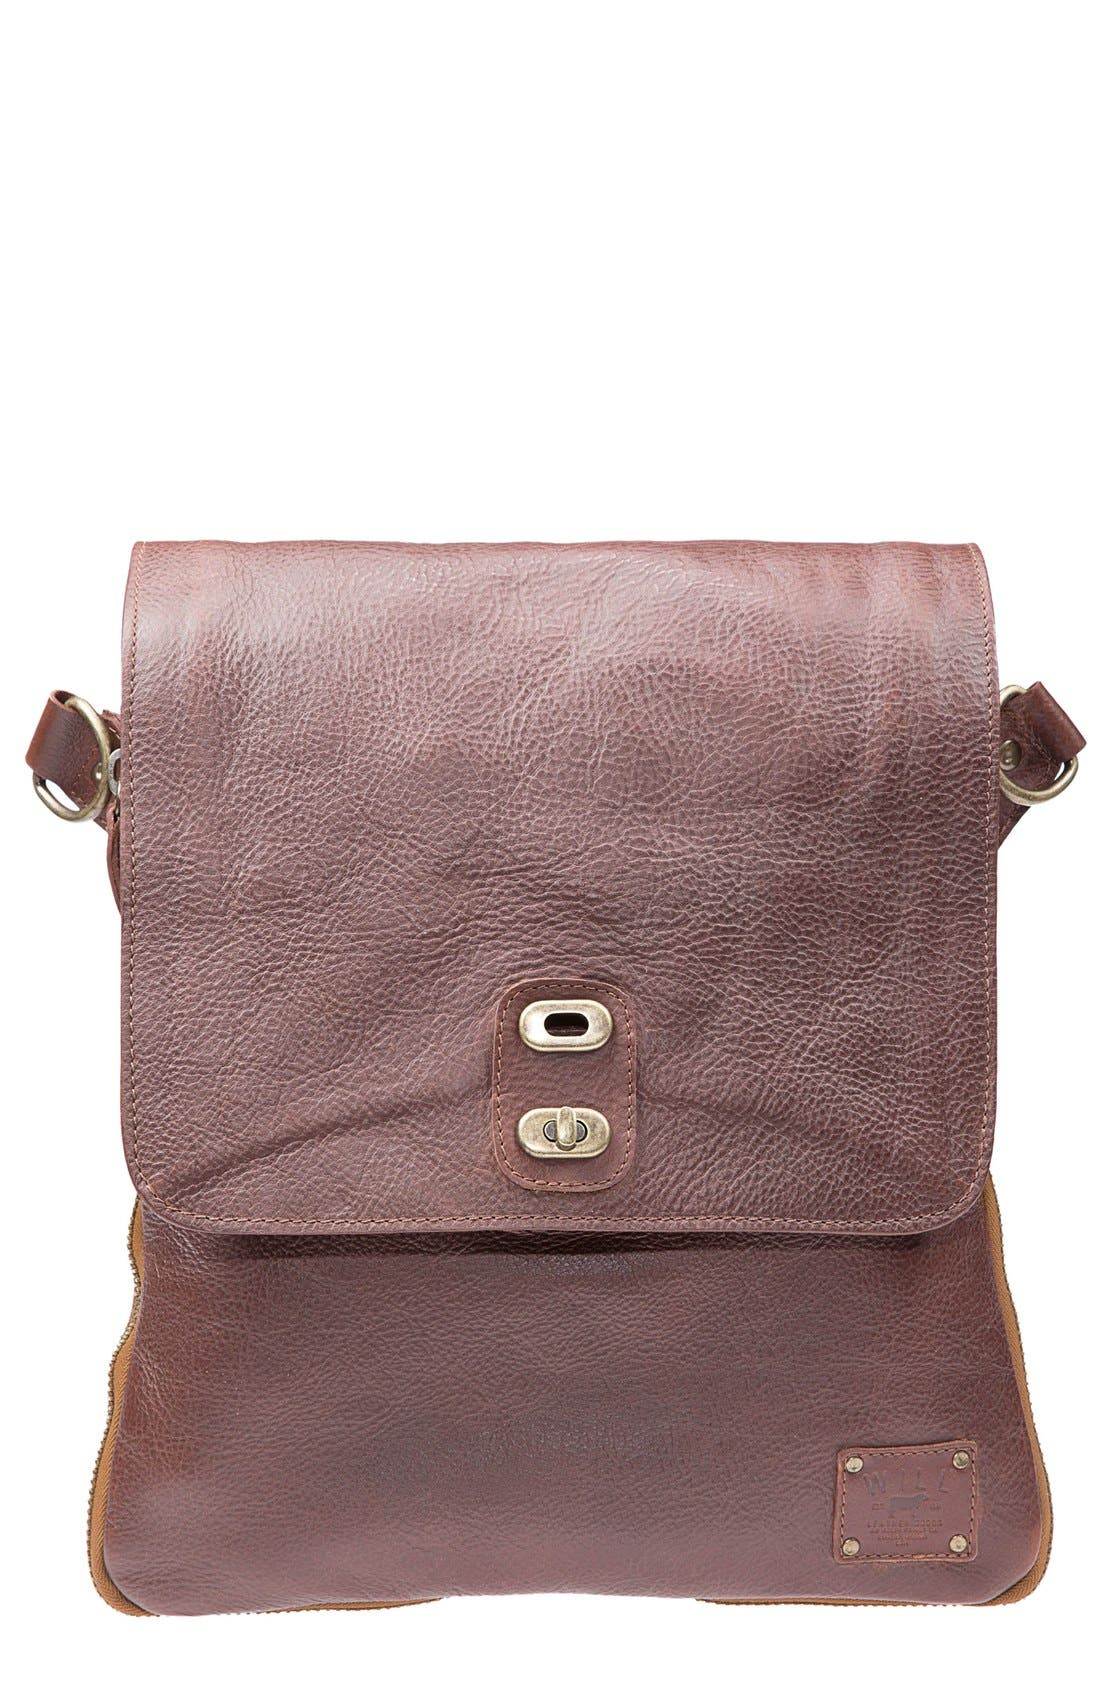 Alternate Image 1 Selected - Will Leather Goods 'Otto' Crossbody Bag